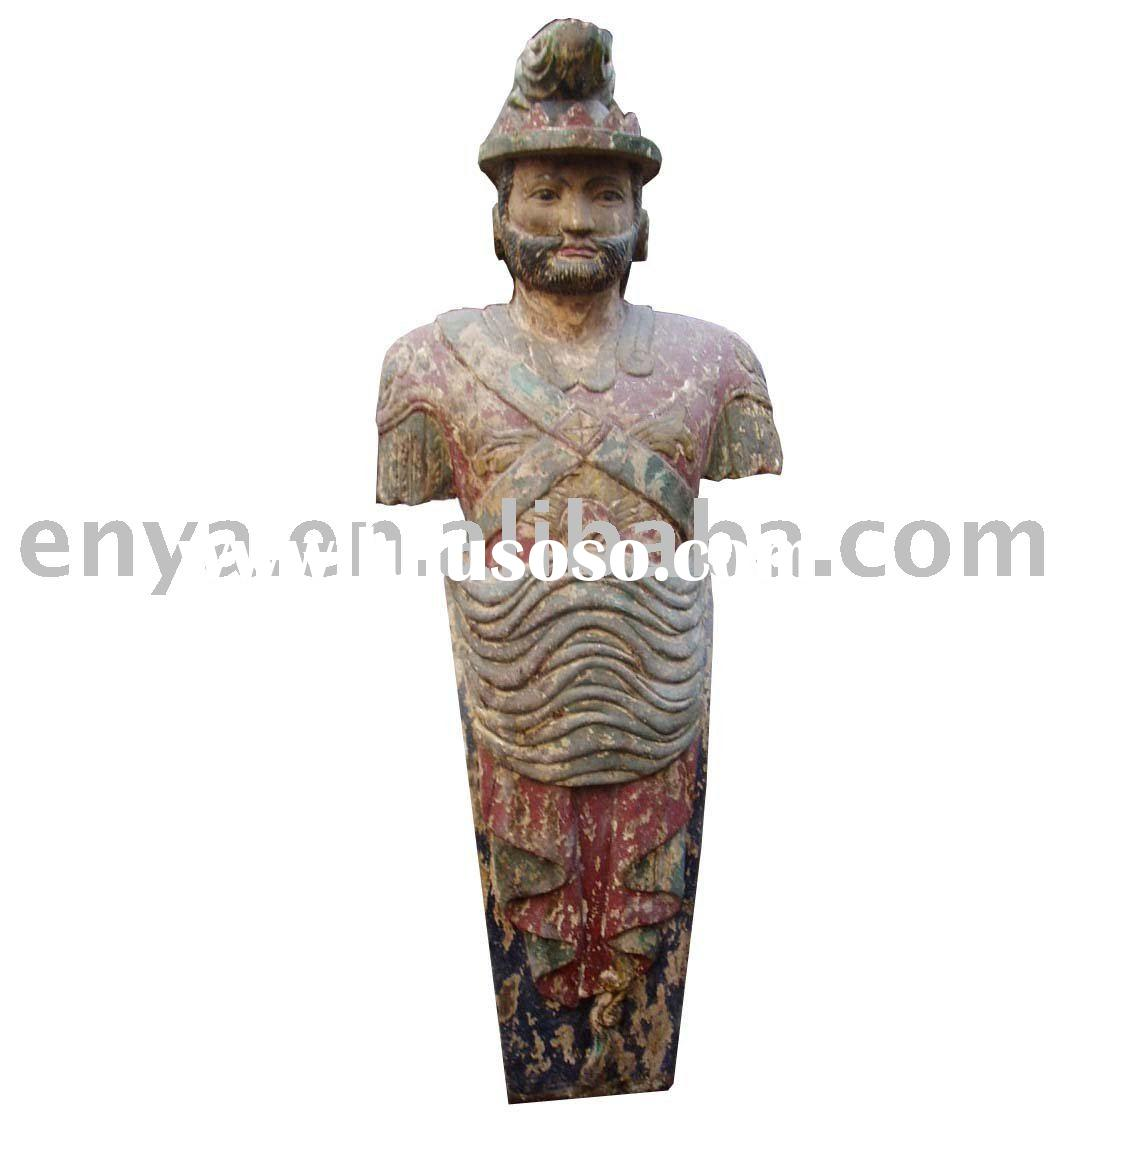 Antique Wood Carving Sculpture, Wooden Carved Statue, Home Decoration